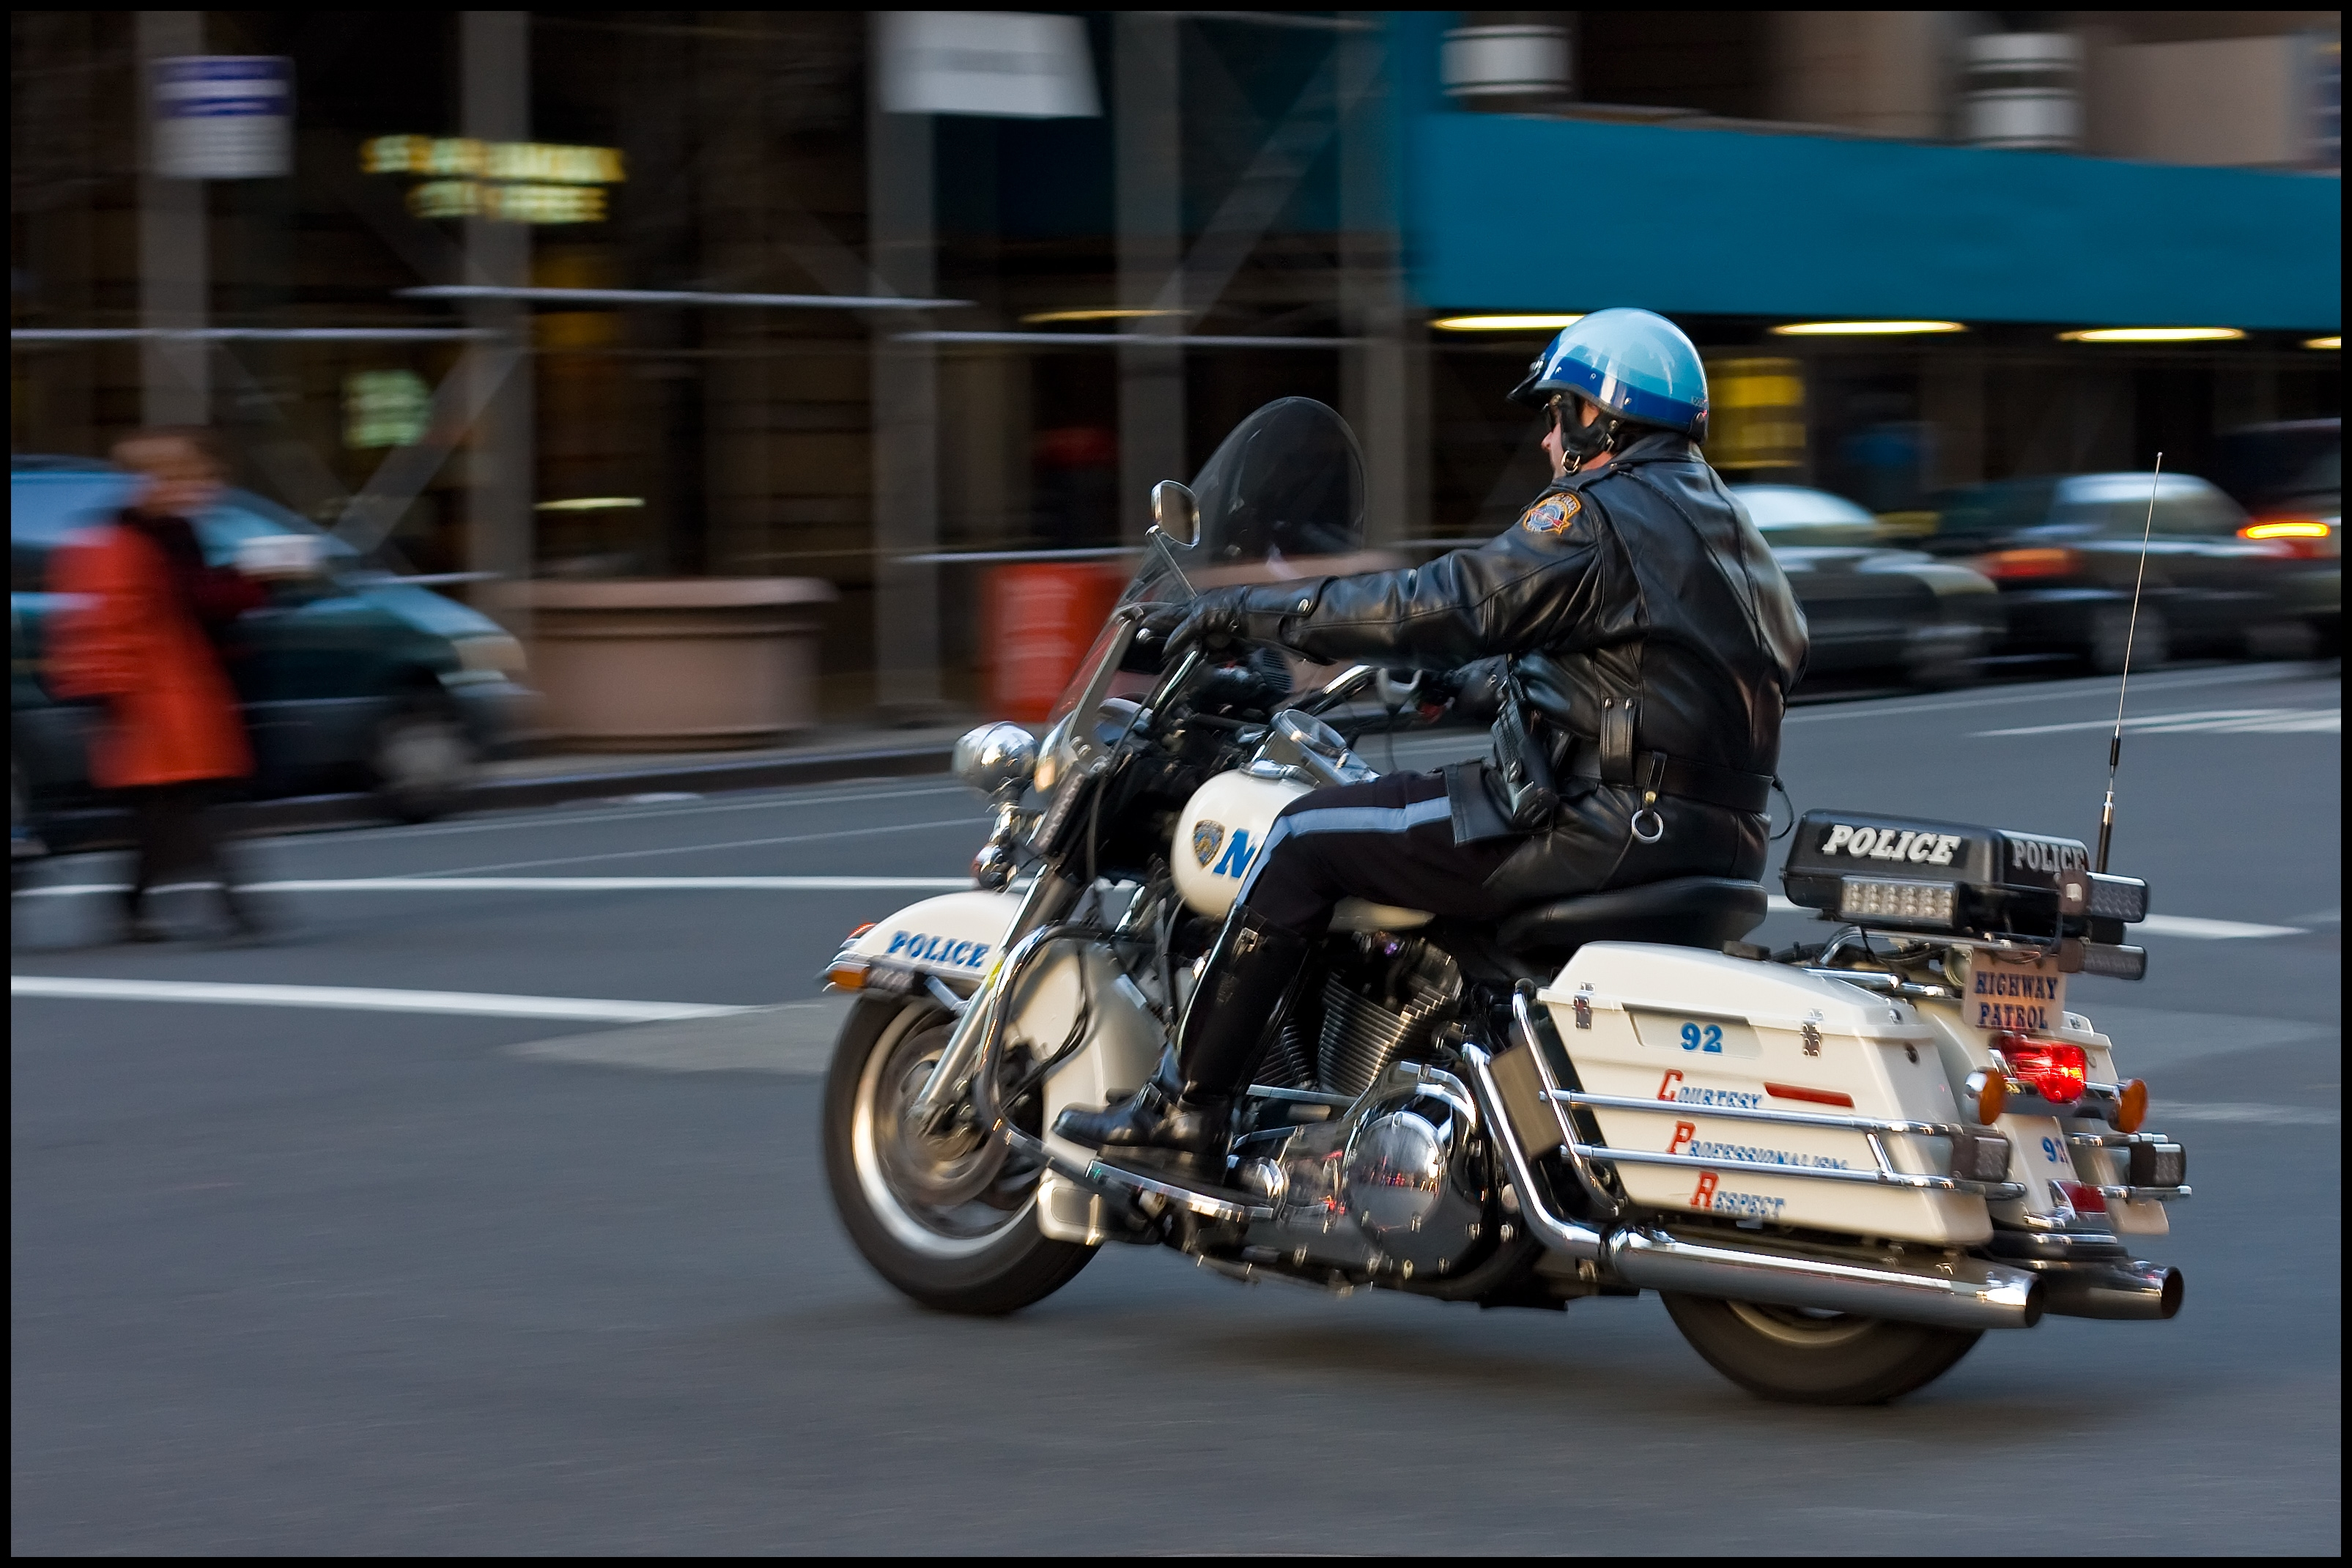 Police Motorcycle motion blur in Manhattan NYC